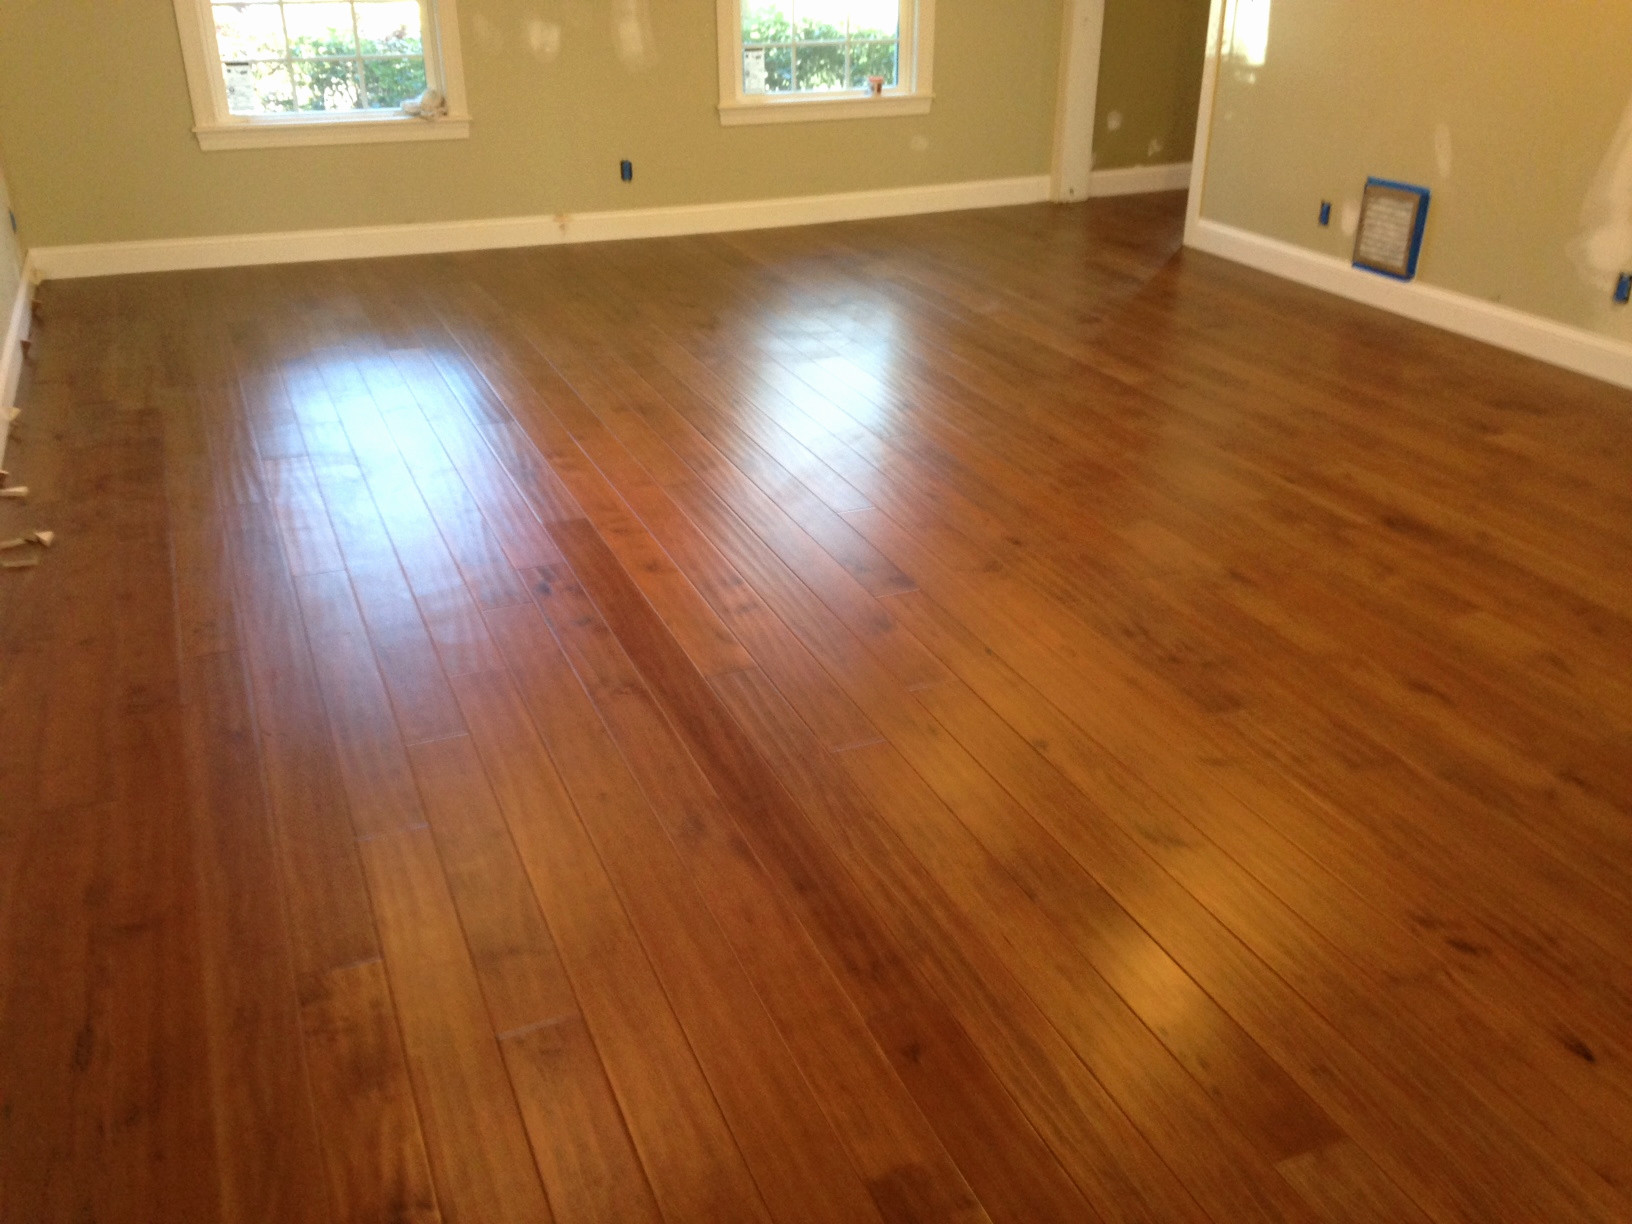 home depot hardwood floor sander rental of arteemark com part 63 regarding bruce wood flooring home depot gorgeous hardwood flooring products flooring bruce engineered